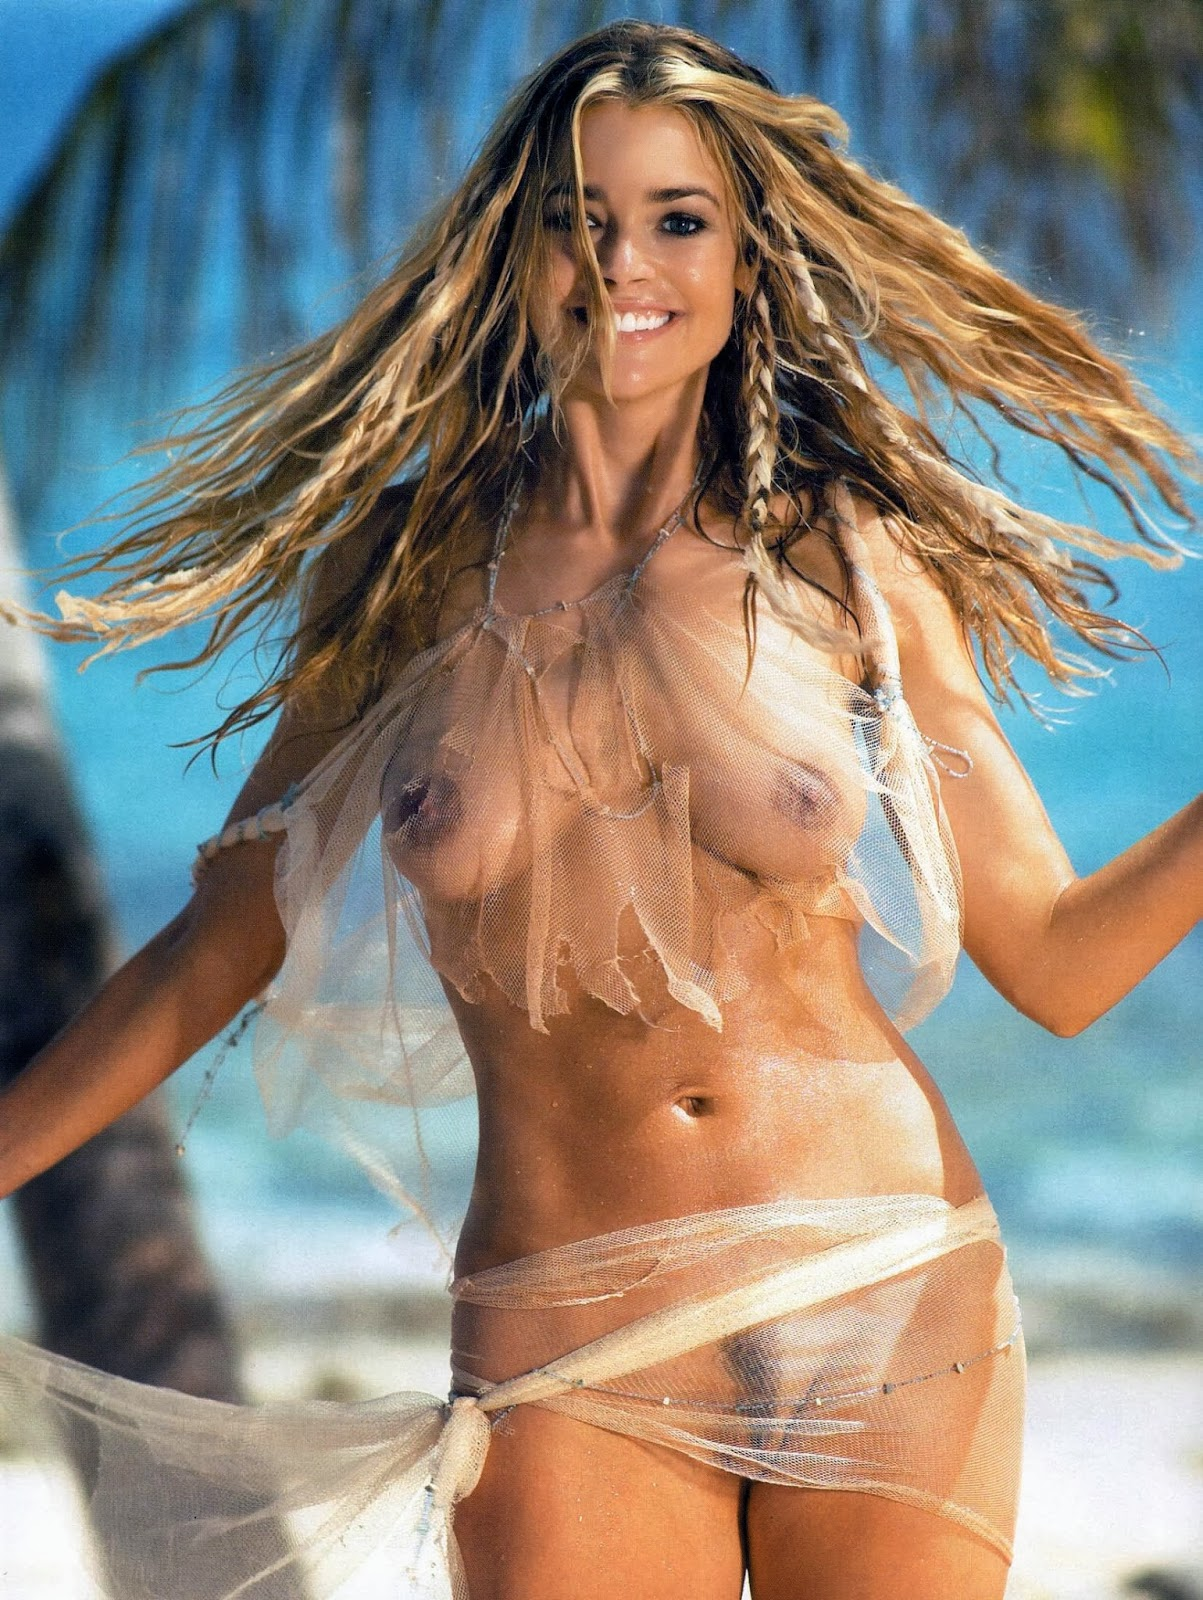 Our Denise Richards Nudes Will Make You Happy 41 PICS